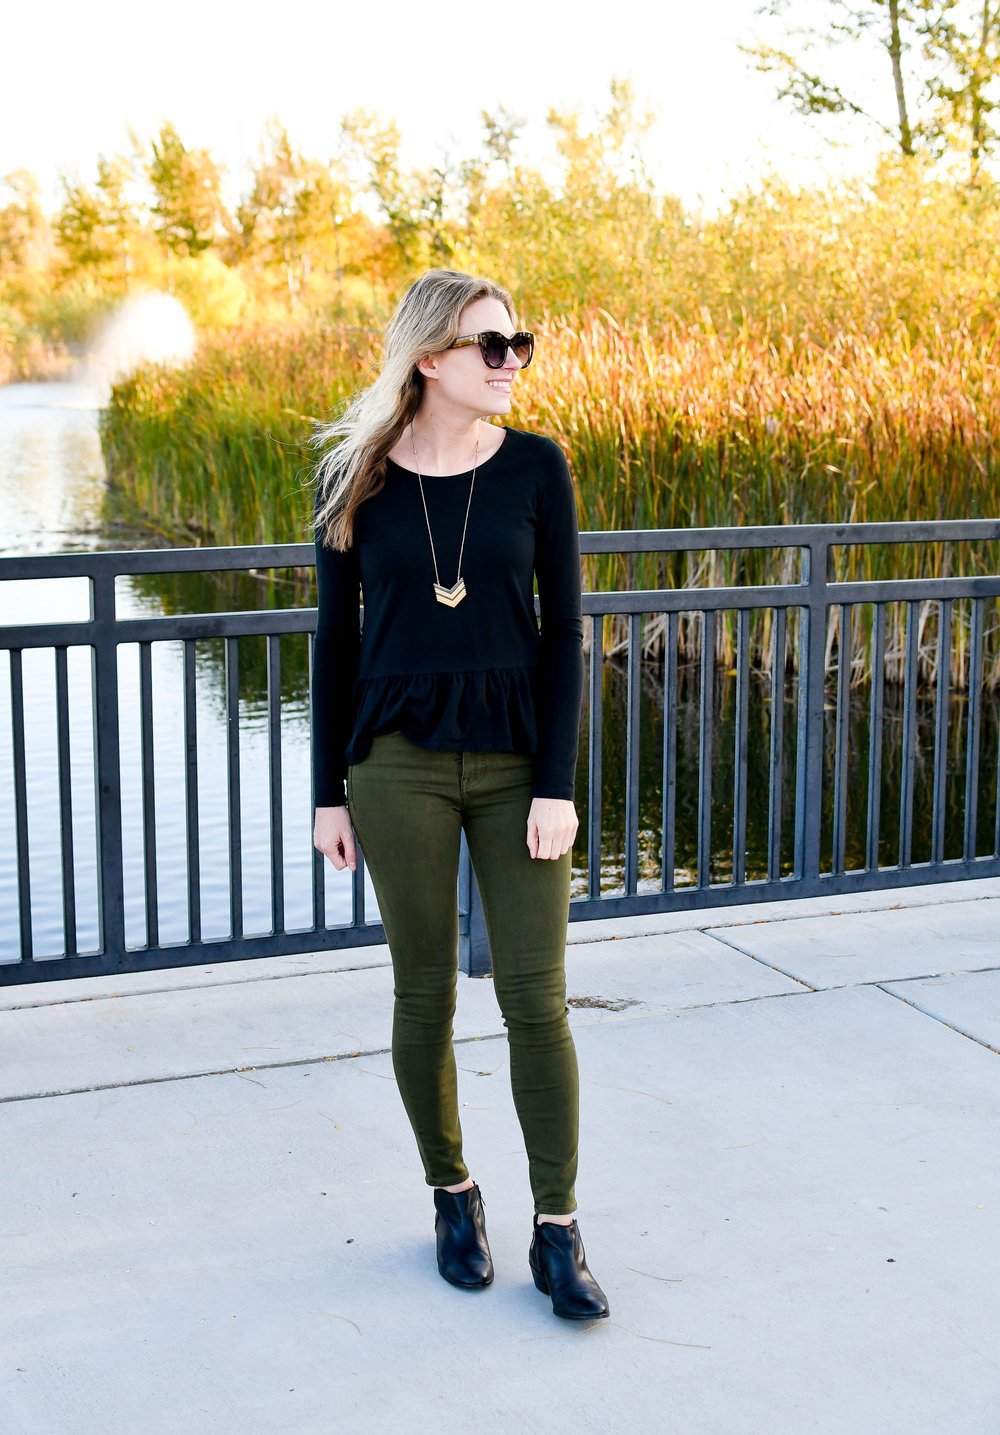 Fall concert uniform: peplum top, olive green jeans, ankle boots — Cotton Cashmere Cat Hair